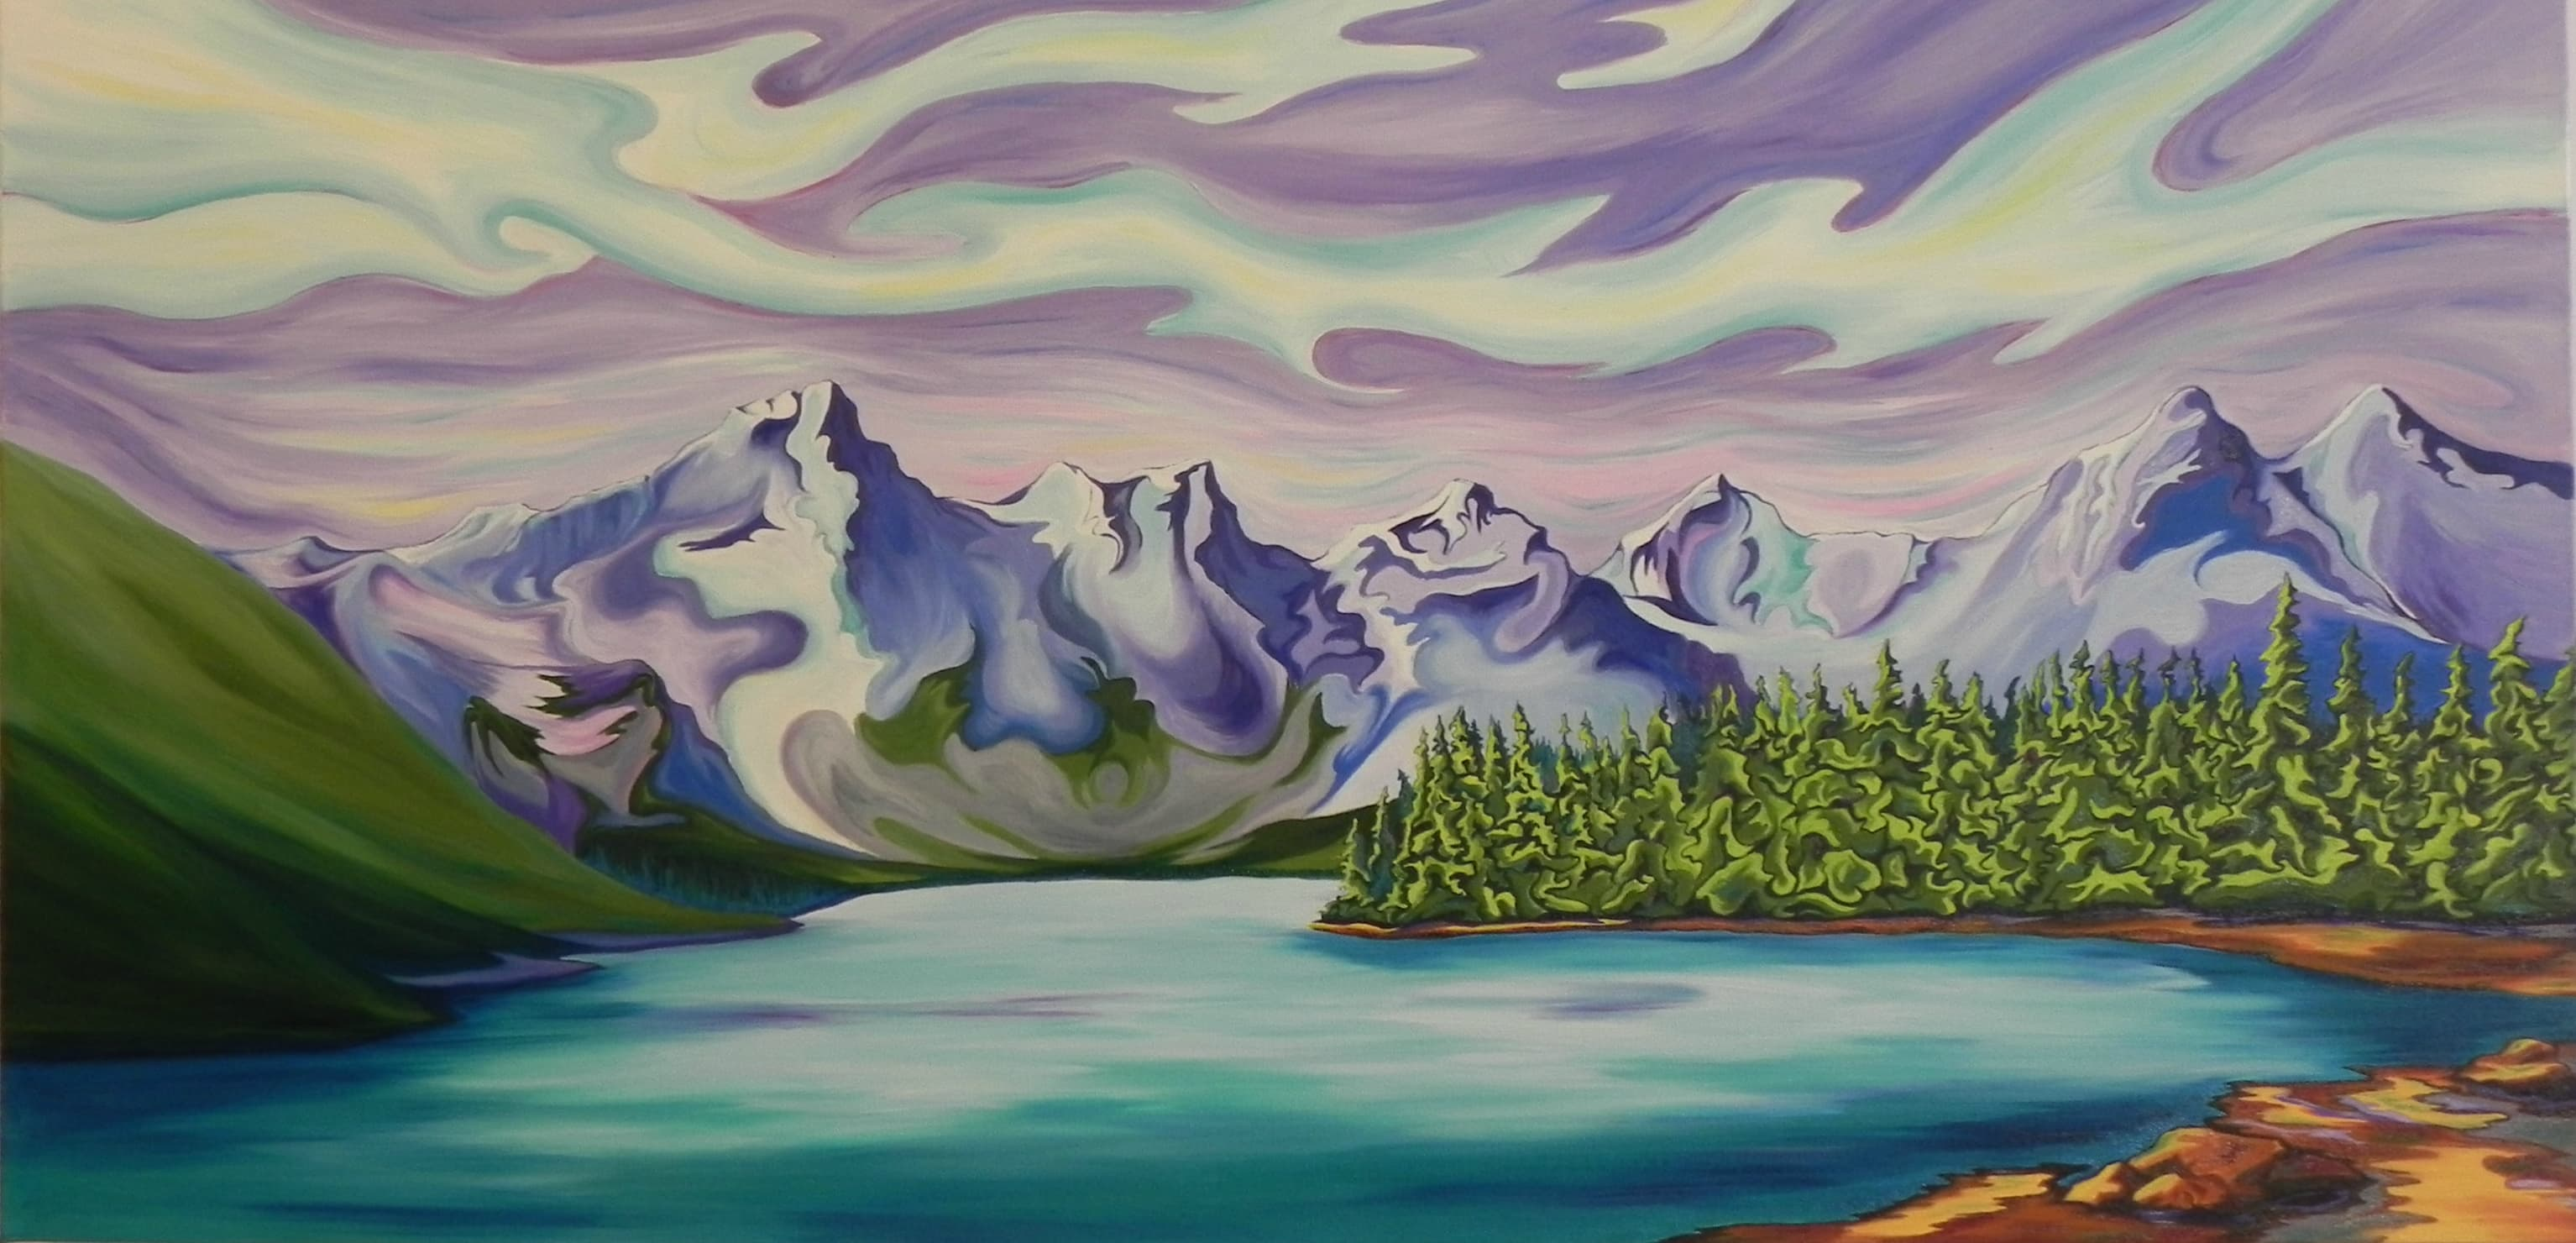 Banff oil painting by Janice Gallant thecreationguild.com